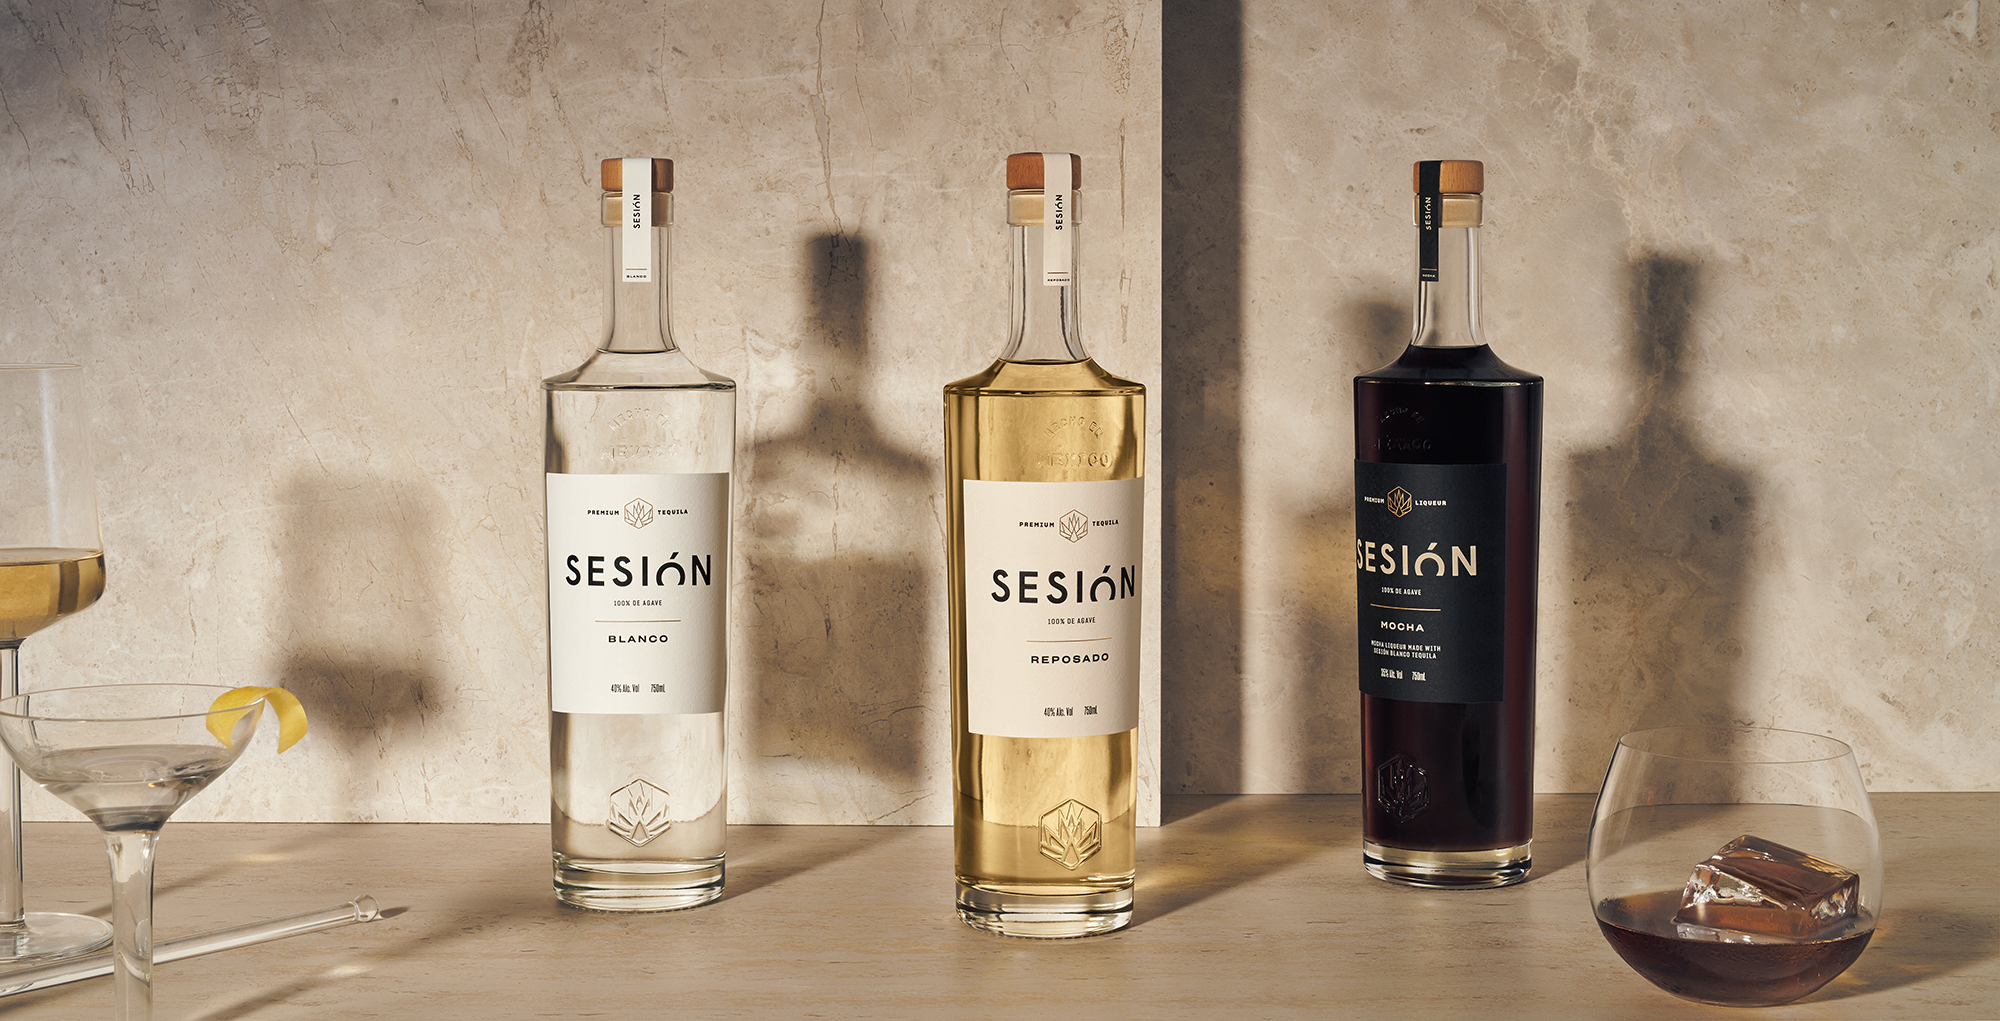 M&C Saatchi's Re and Sesión Tequila wins 'Best in Class' Platinum design award at SIP Awards